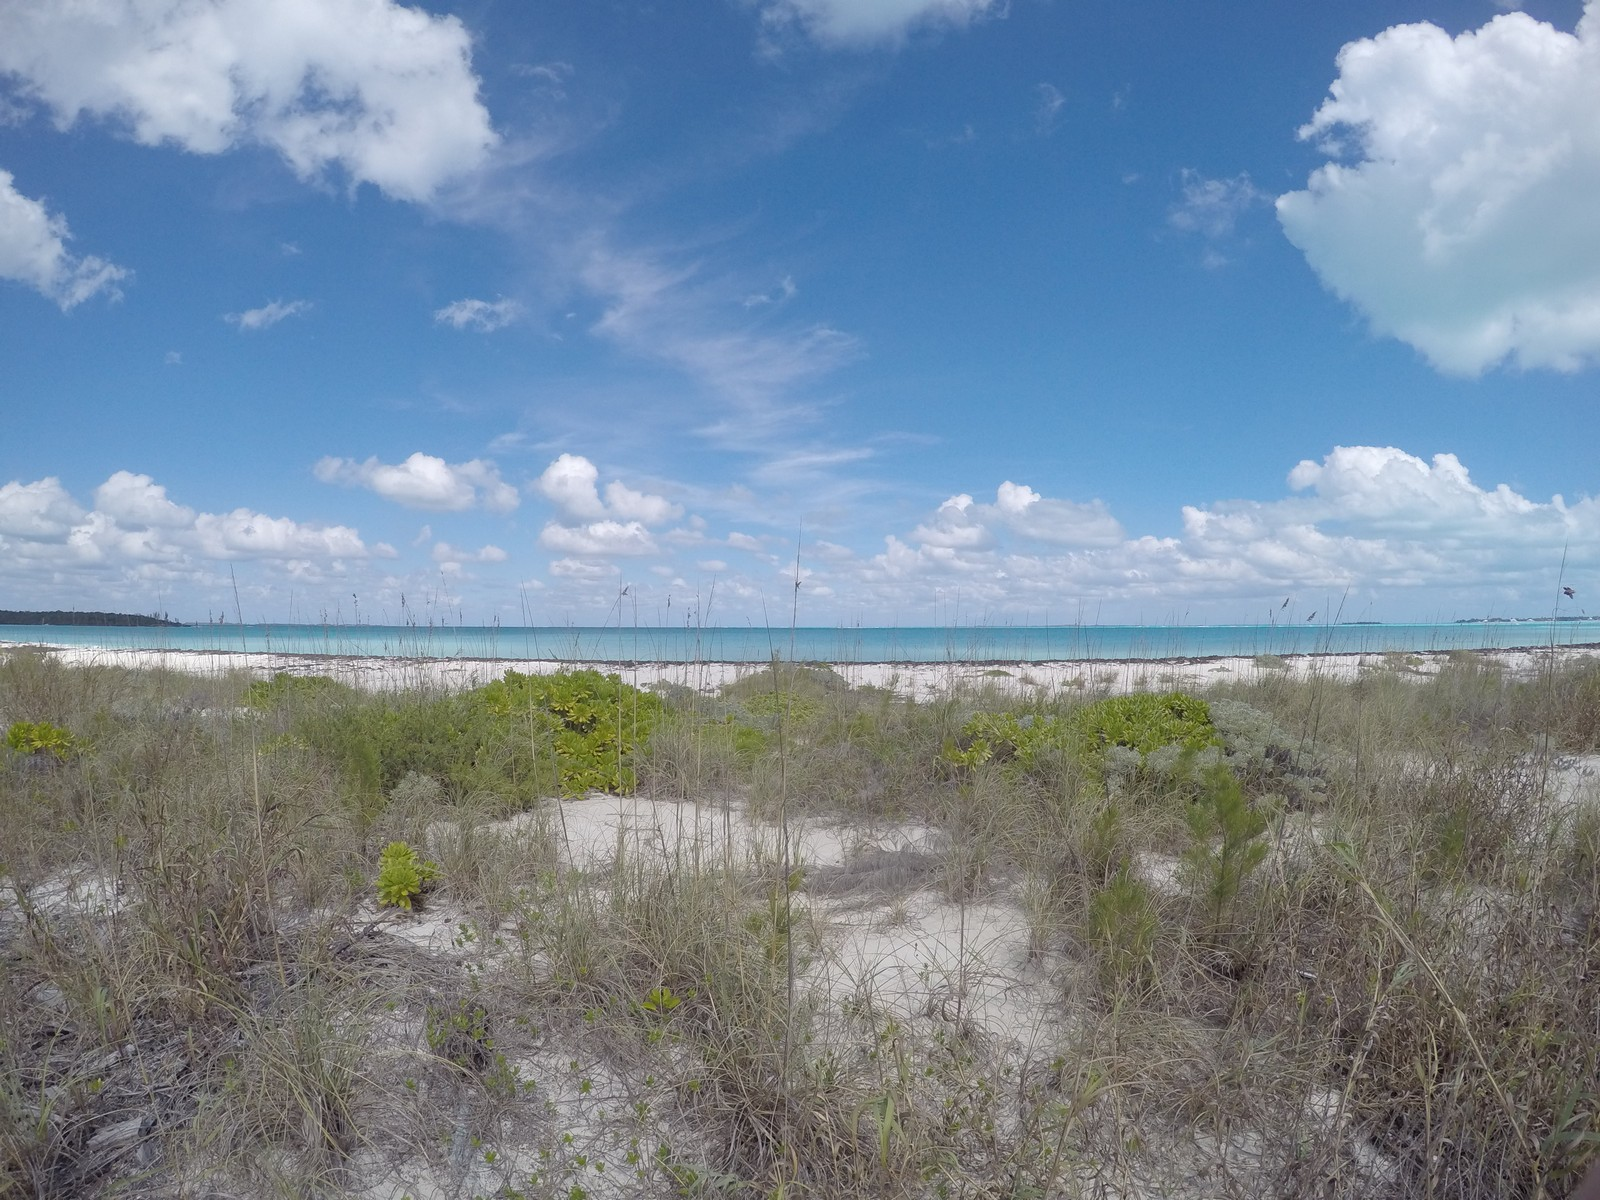 Land for Sale at Lot 27 Ocean Blvd. Treasure Cay, Abaco Bahamas